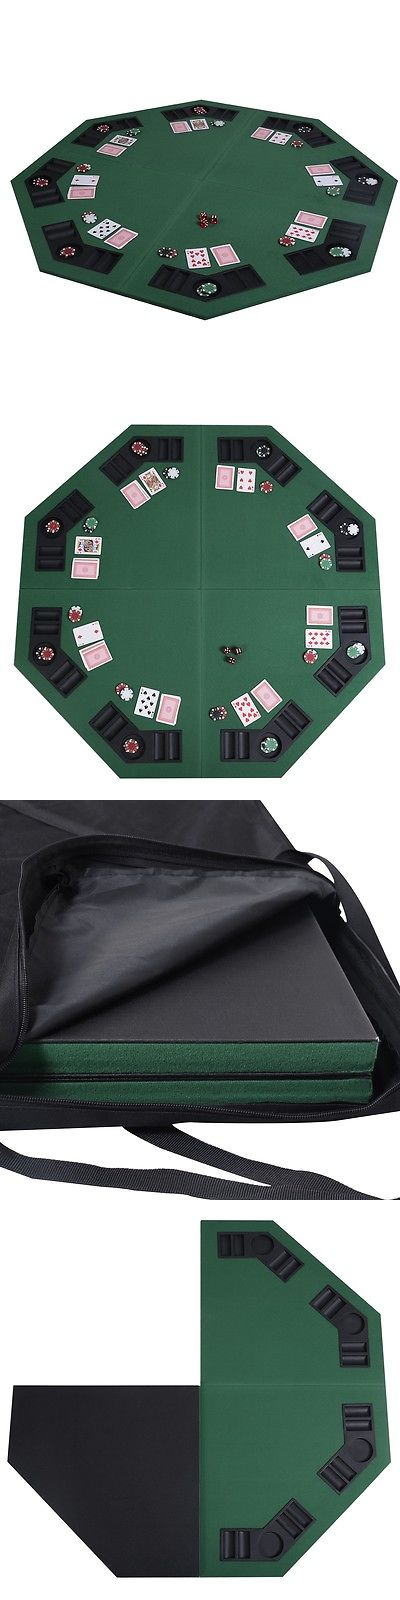 Card Tables And Tabletops 166572: Poker Table Top Texas Holdem Trademark  Octagon Oval New 48